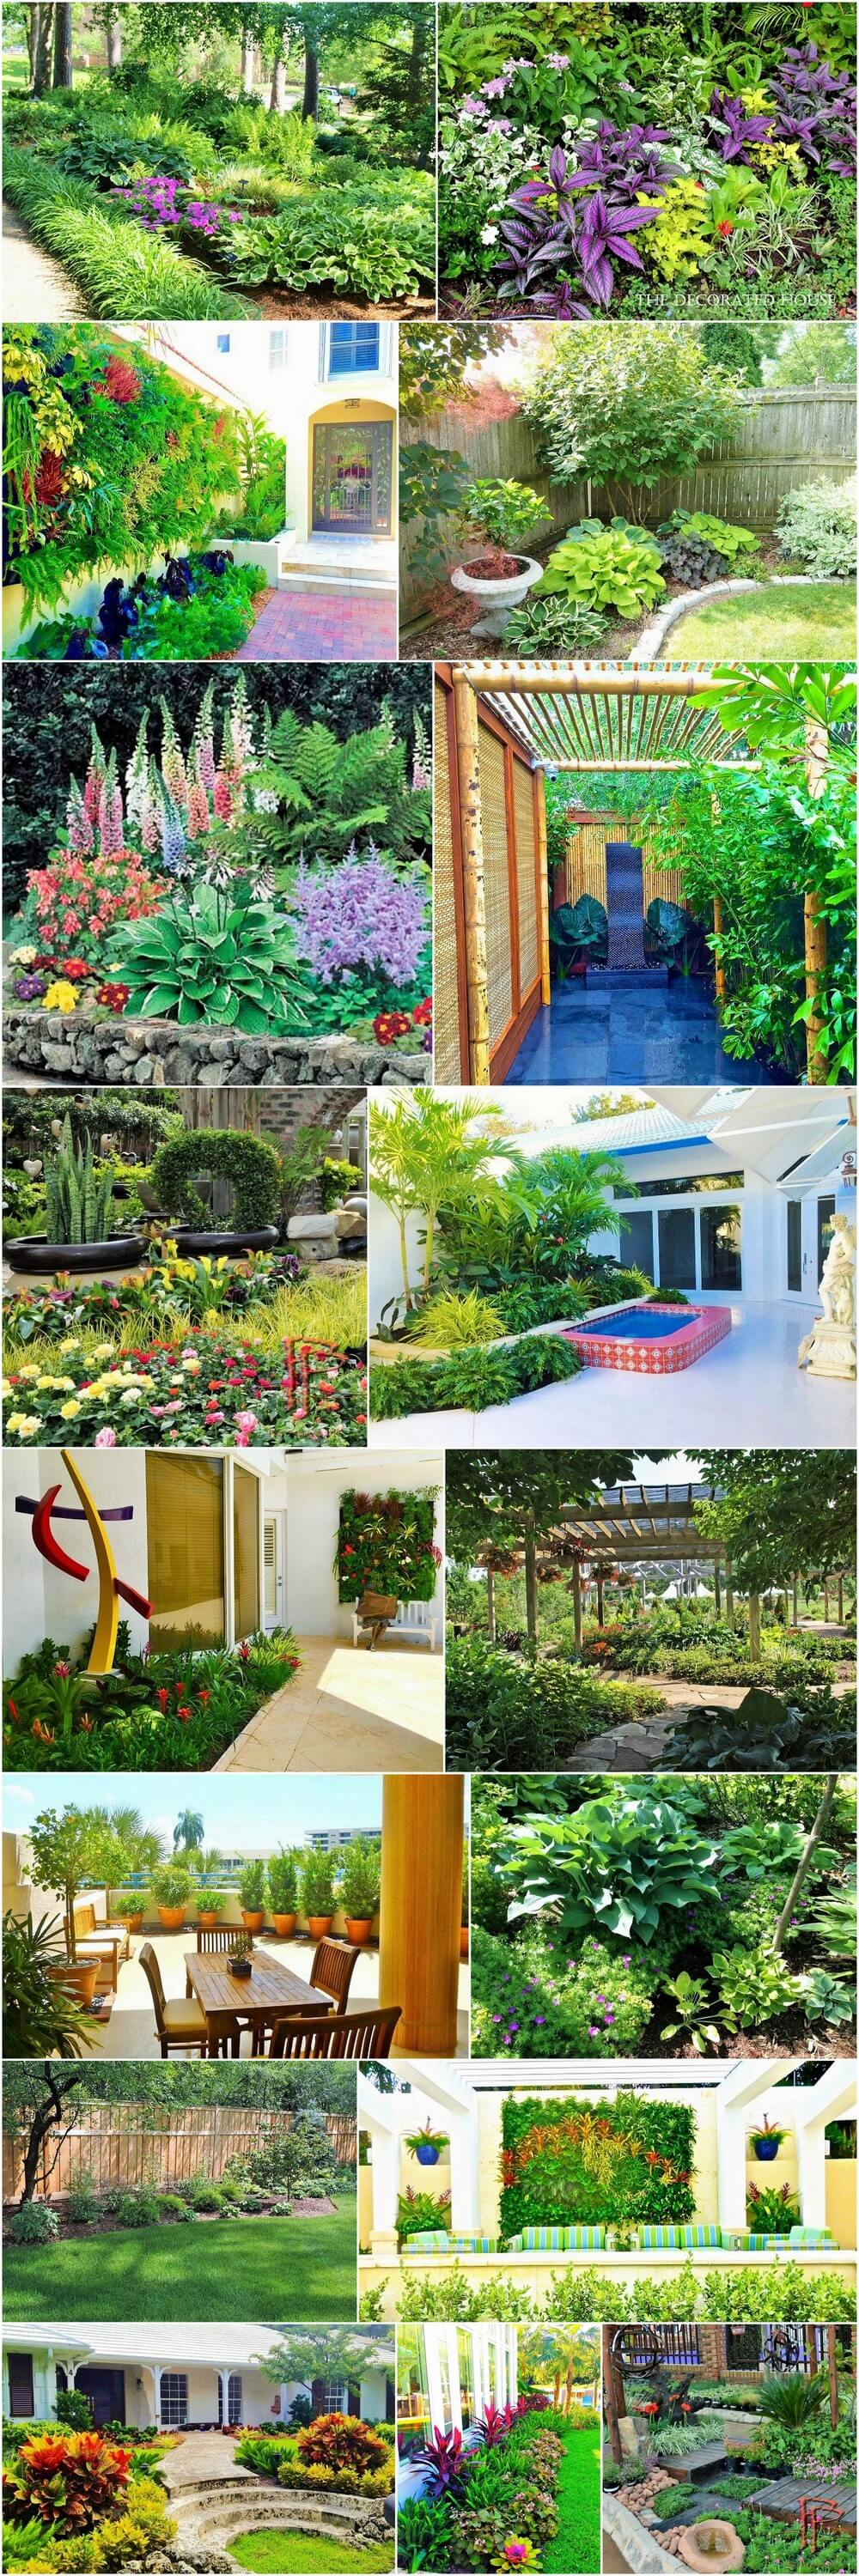 How To Decorate The Garden Of Your Home? - 1001 Motive Ideas